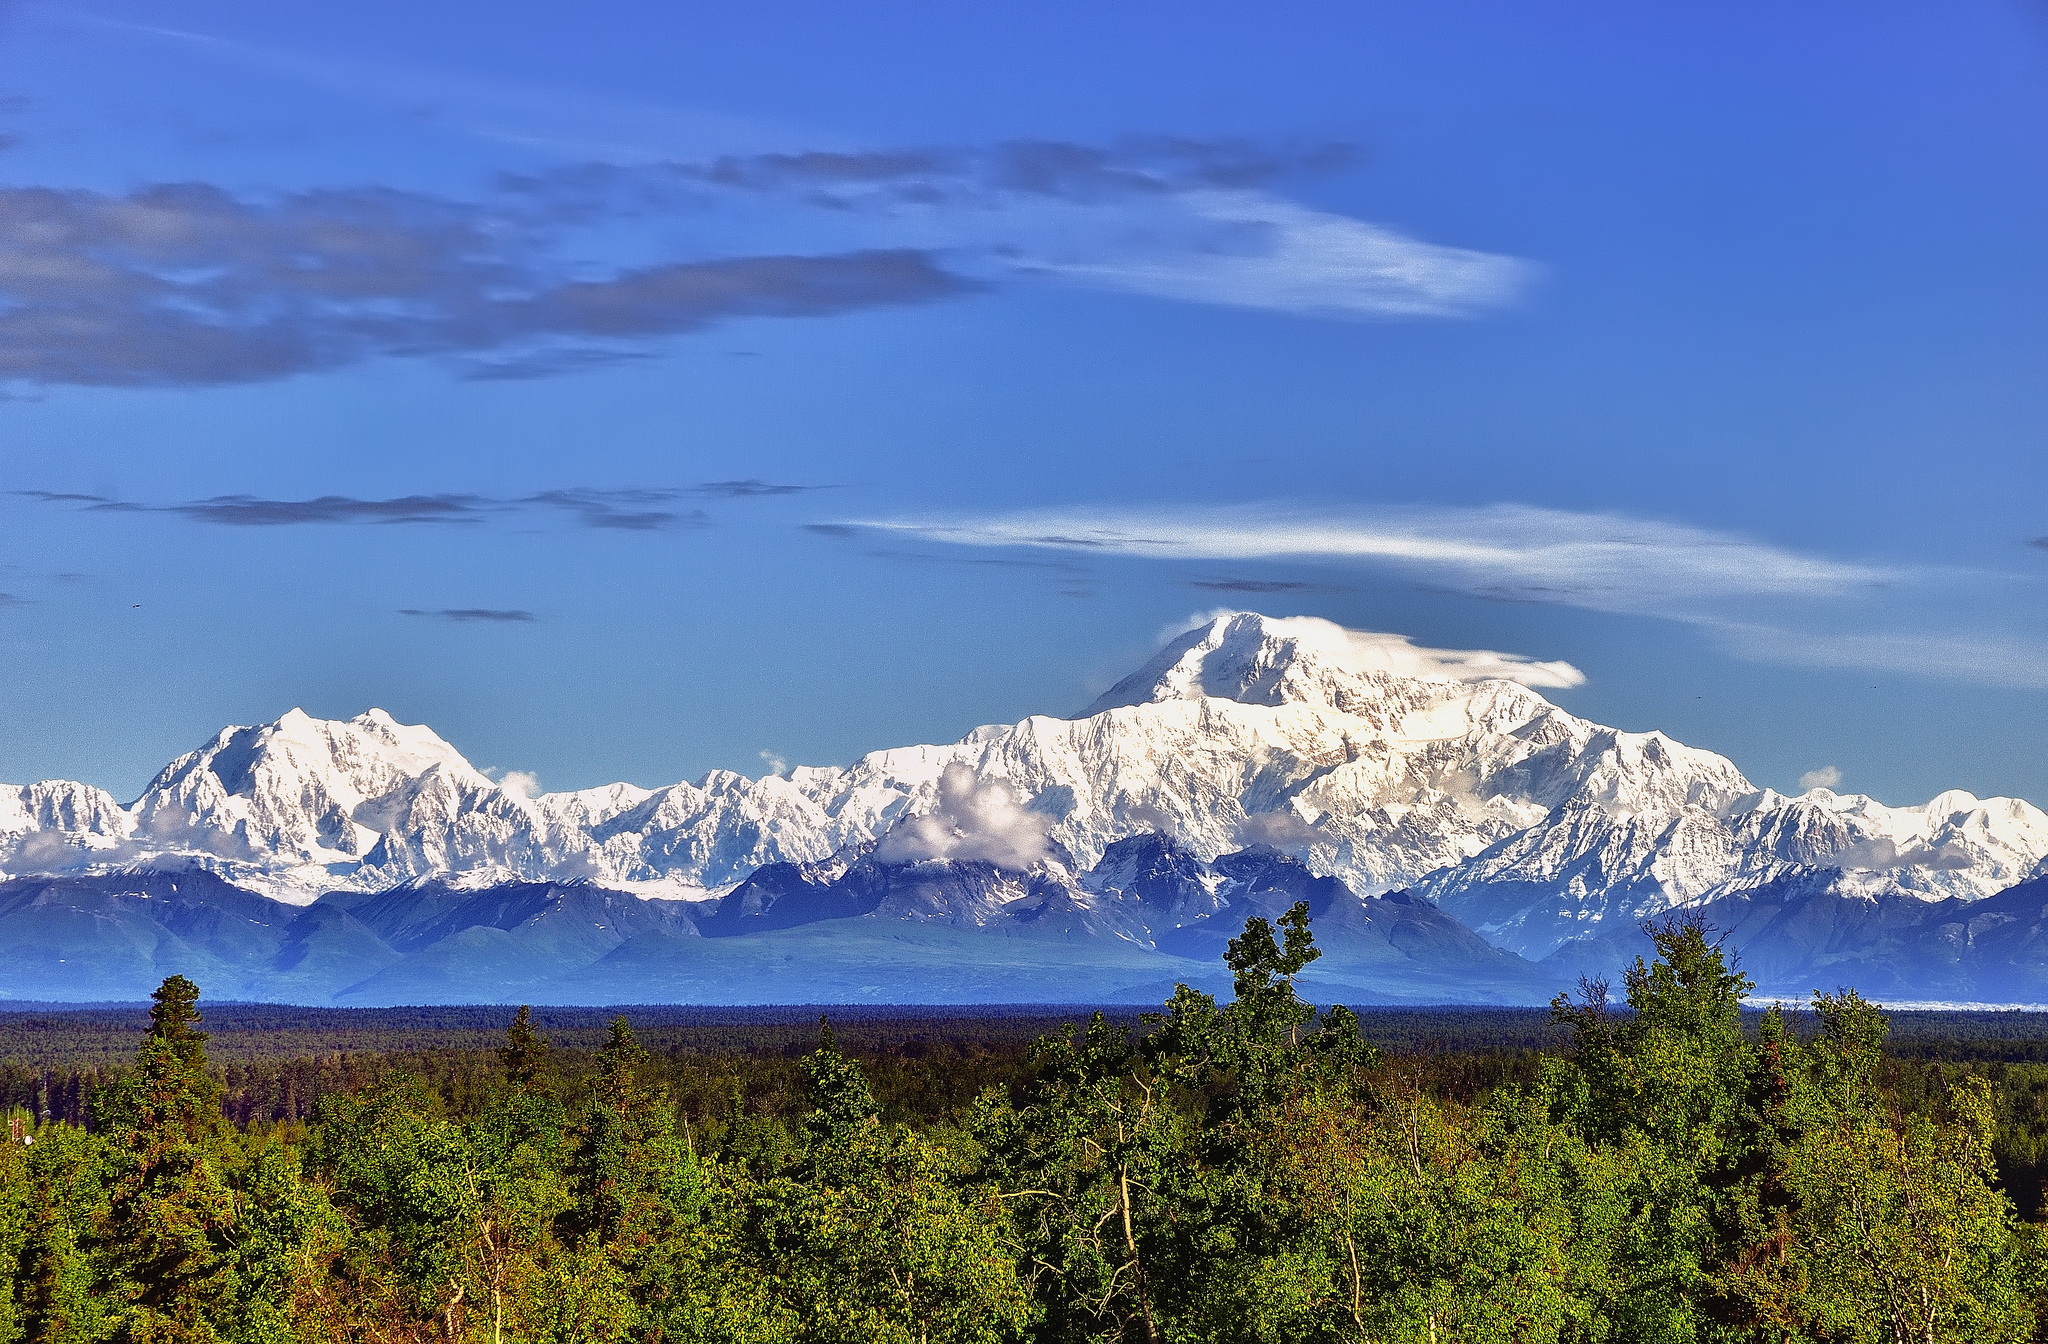 alaska denali denali essay in national park photographic preserve Click to read more about in denali: a photographic essay of denali national park and preserve alaska by kim heacox librarything is a cataloging and social networking.